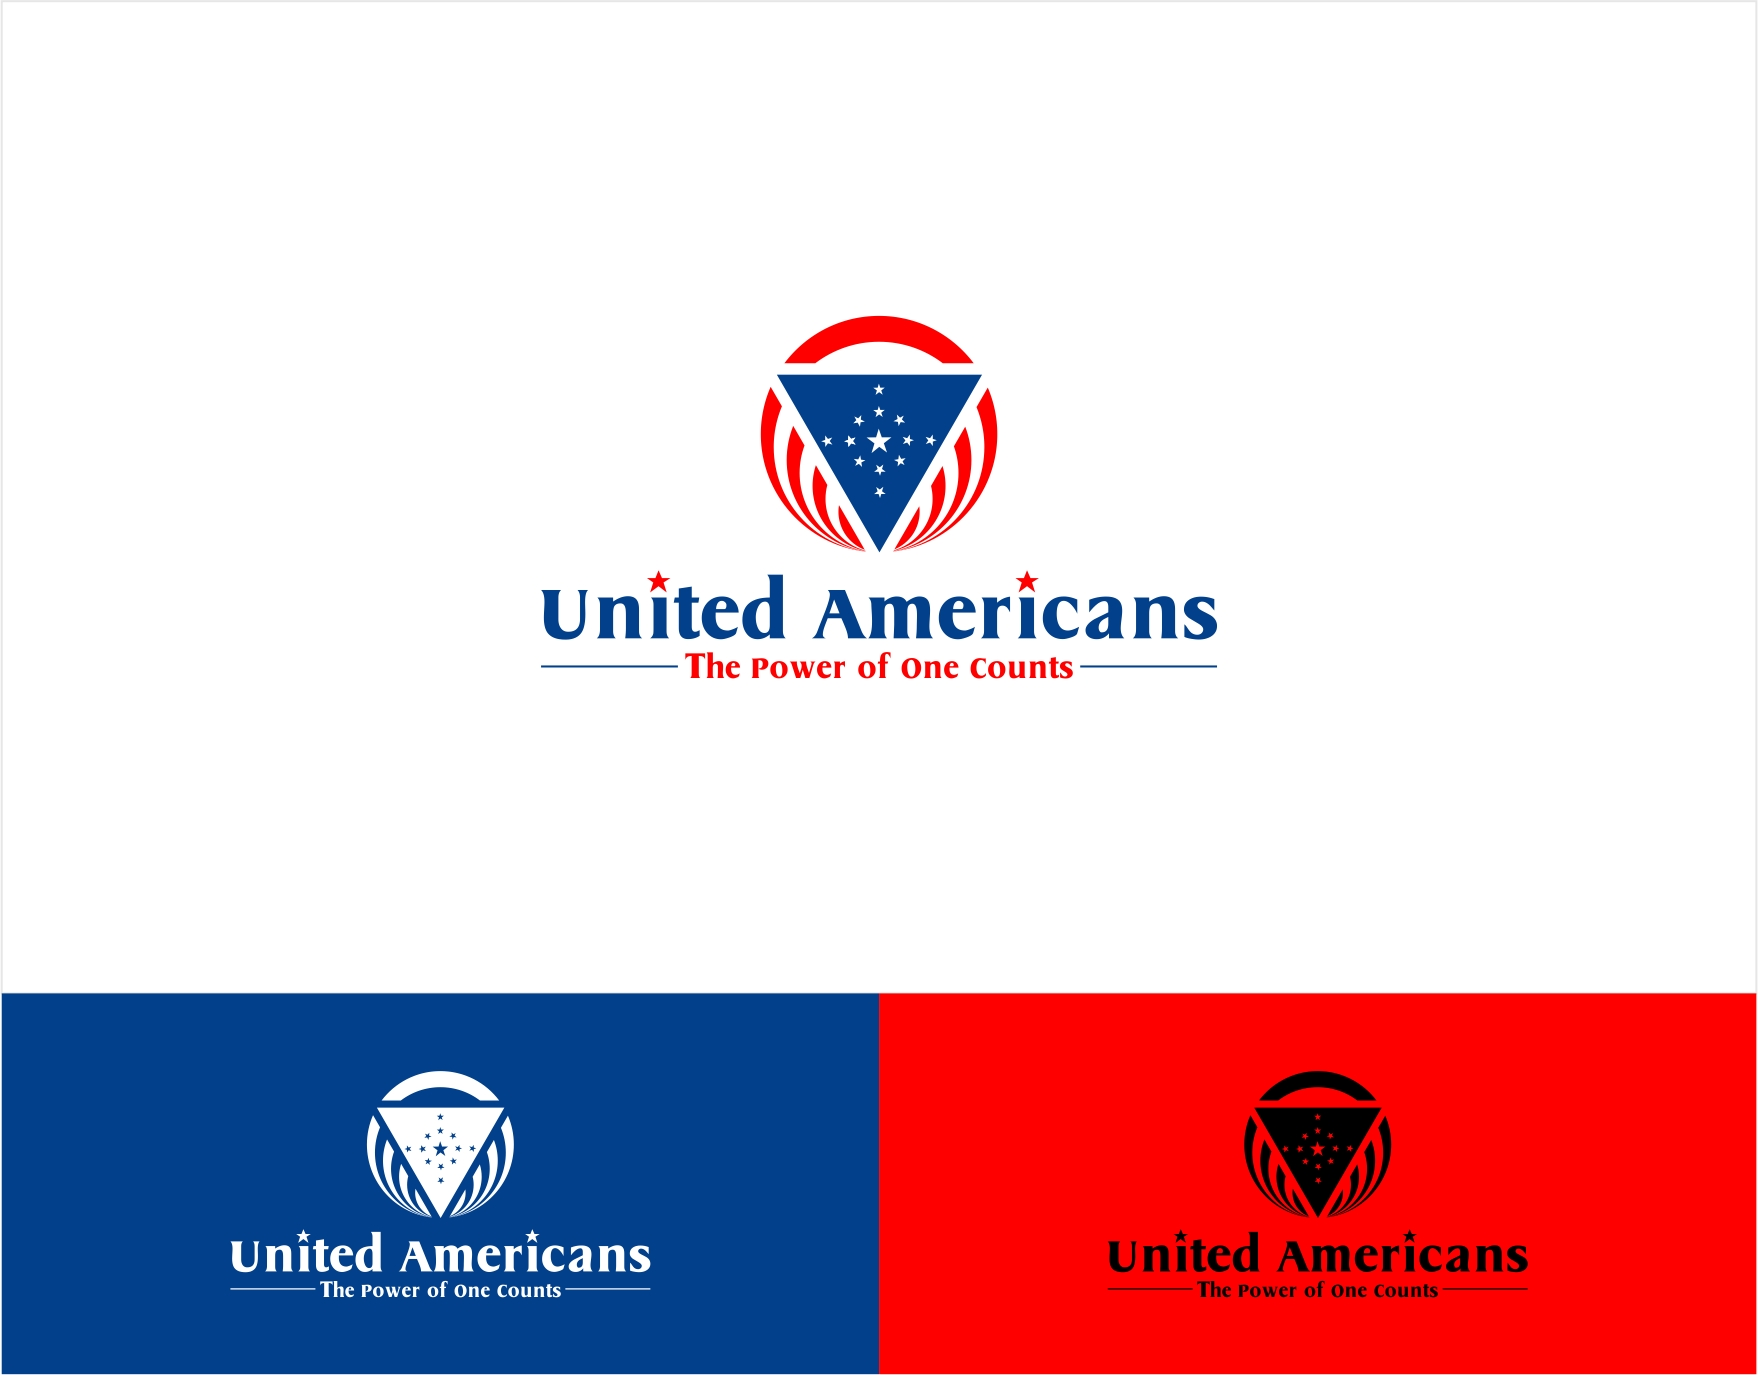 Logo Design by haidu - Entry No. 72 in the Logo Design Contest Creative Logo Design for United Americans.